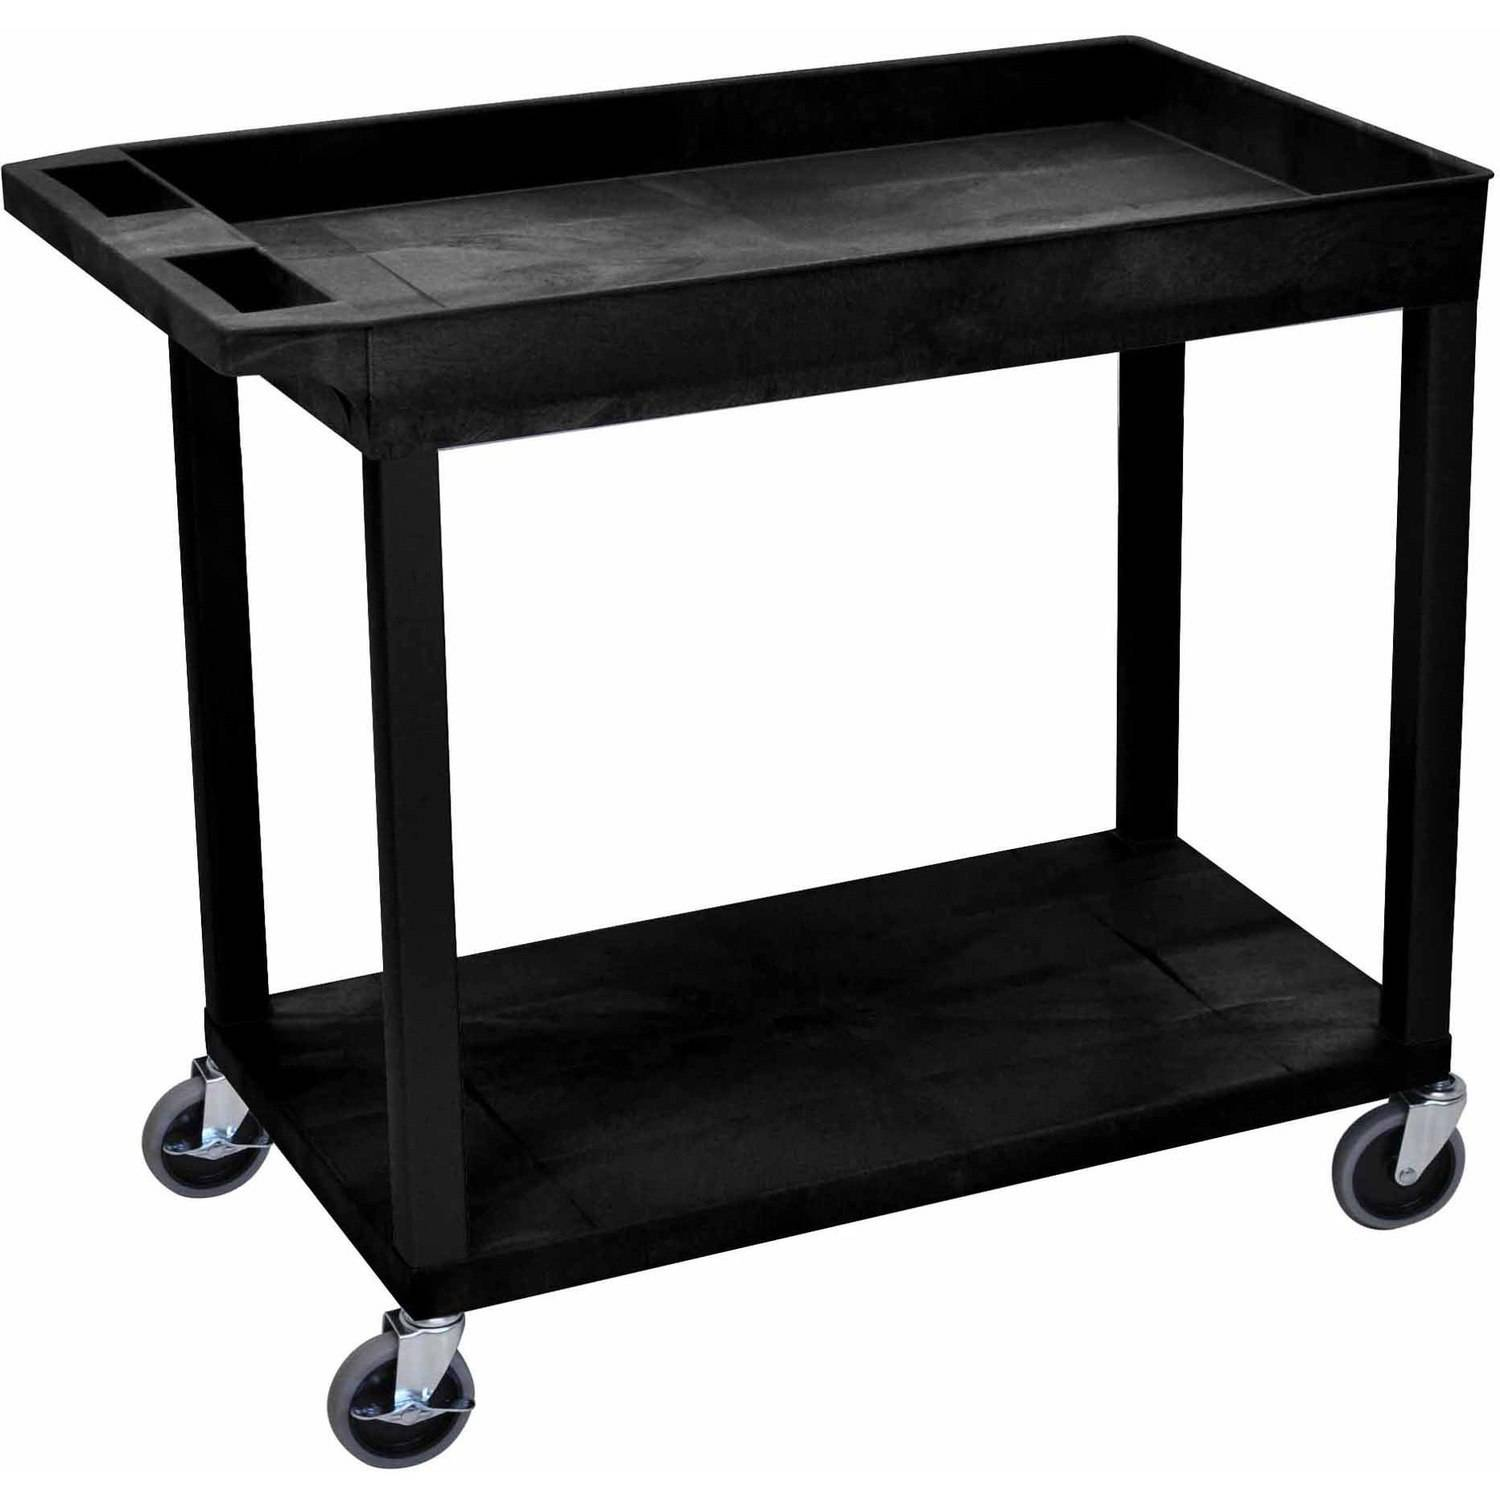 "Luxor EC12 18"" x 32"" Cart with 1 Tub and 1 Flat Shelf"